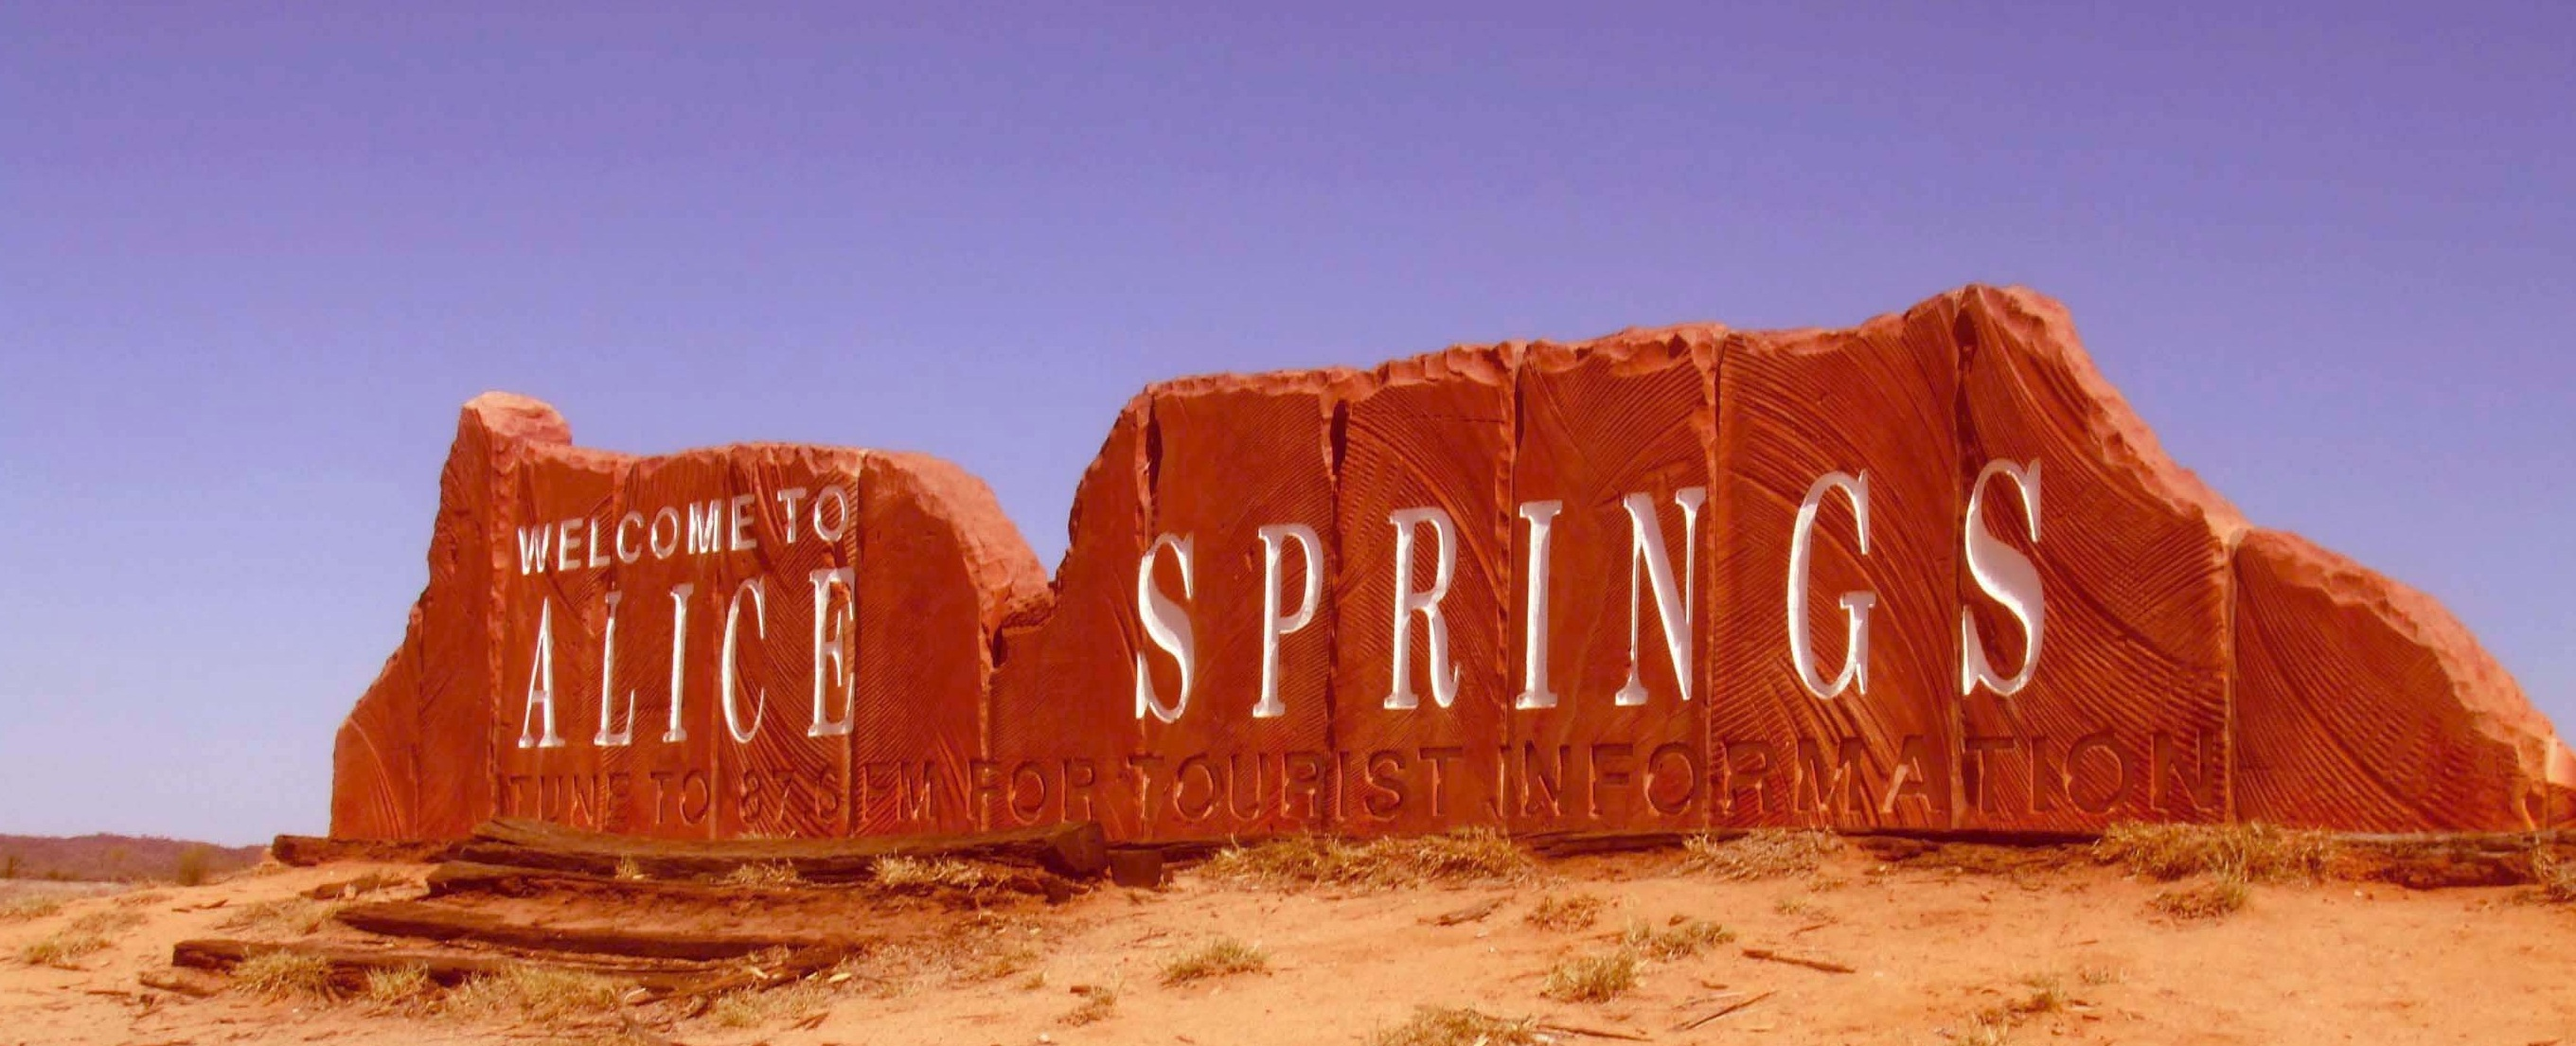 5542755f-6402-498d-afeb-eead417de47dAlice-Springs-Welcome-Sign